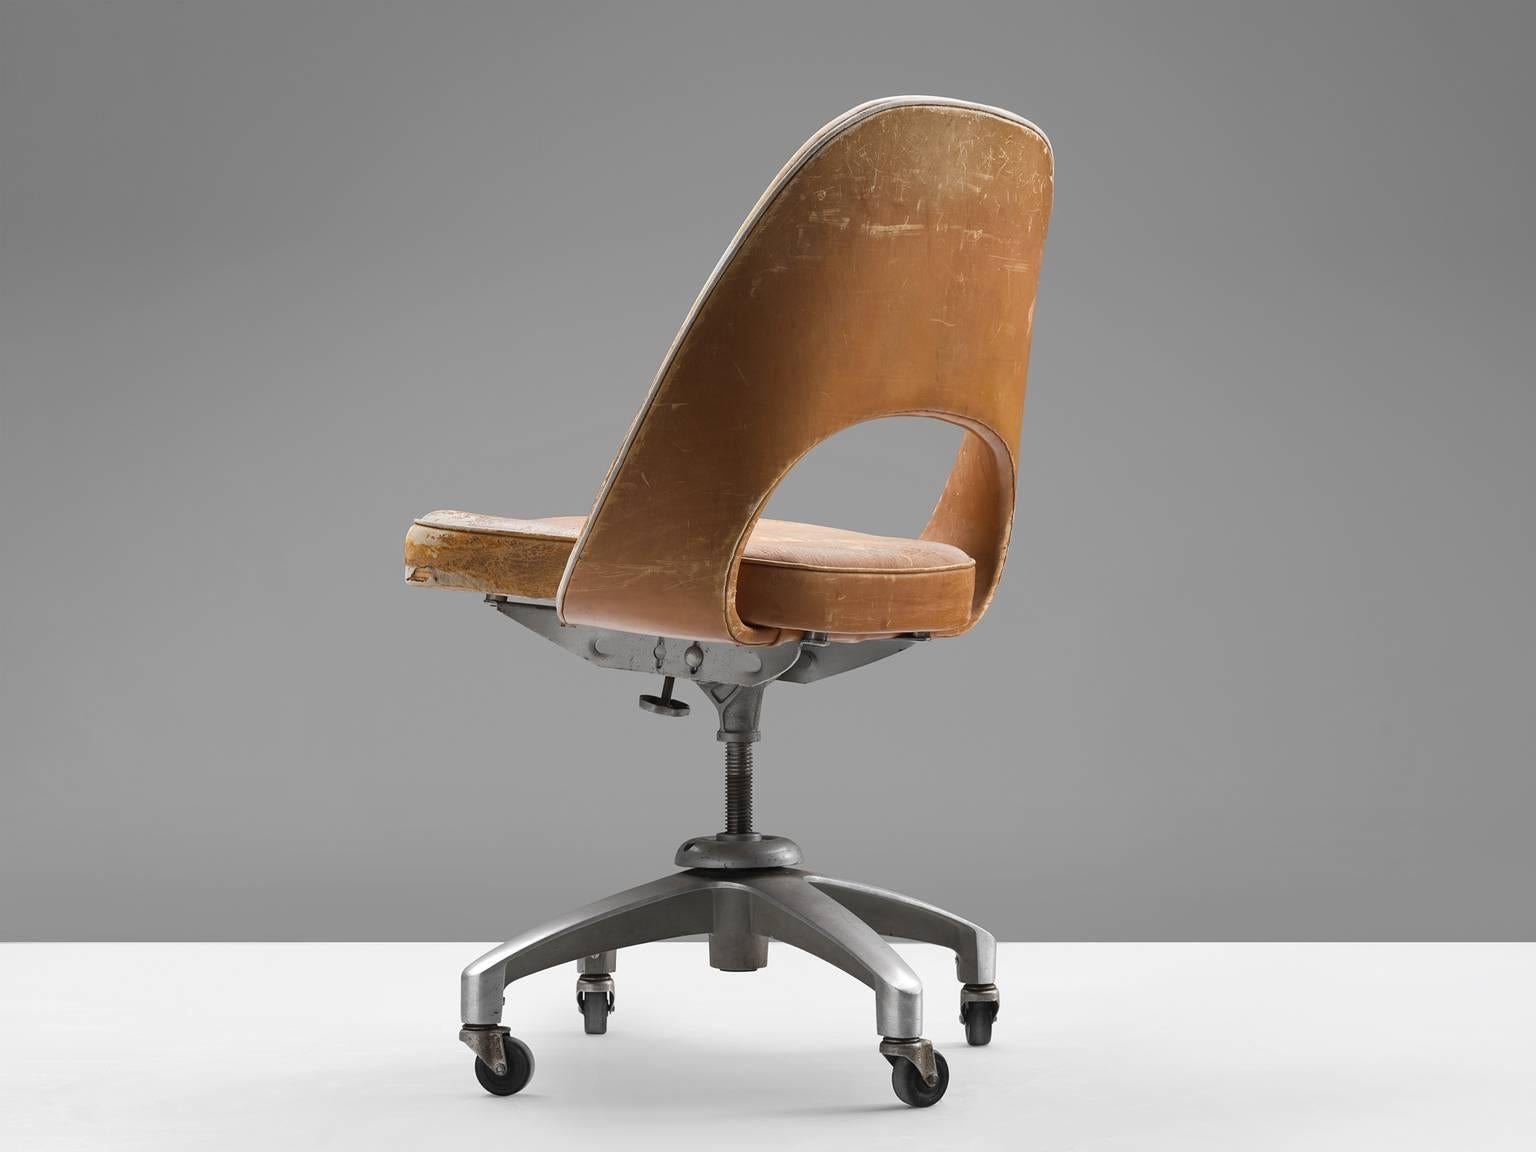 Eero Saarinen, Desk Chair, Steel And Leather, United States, 1950s. This